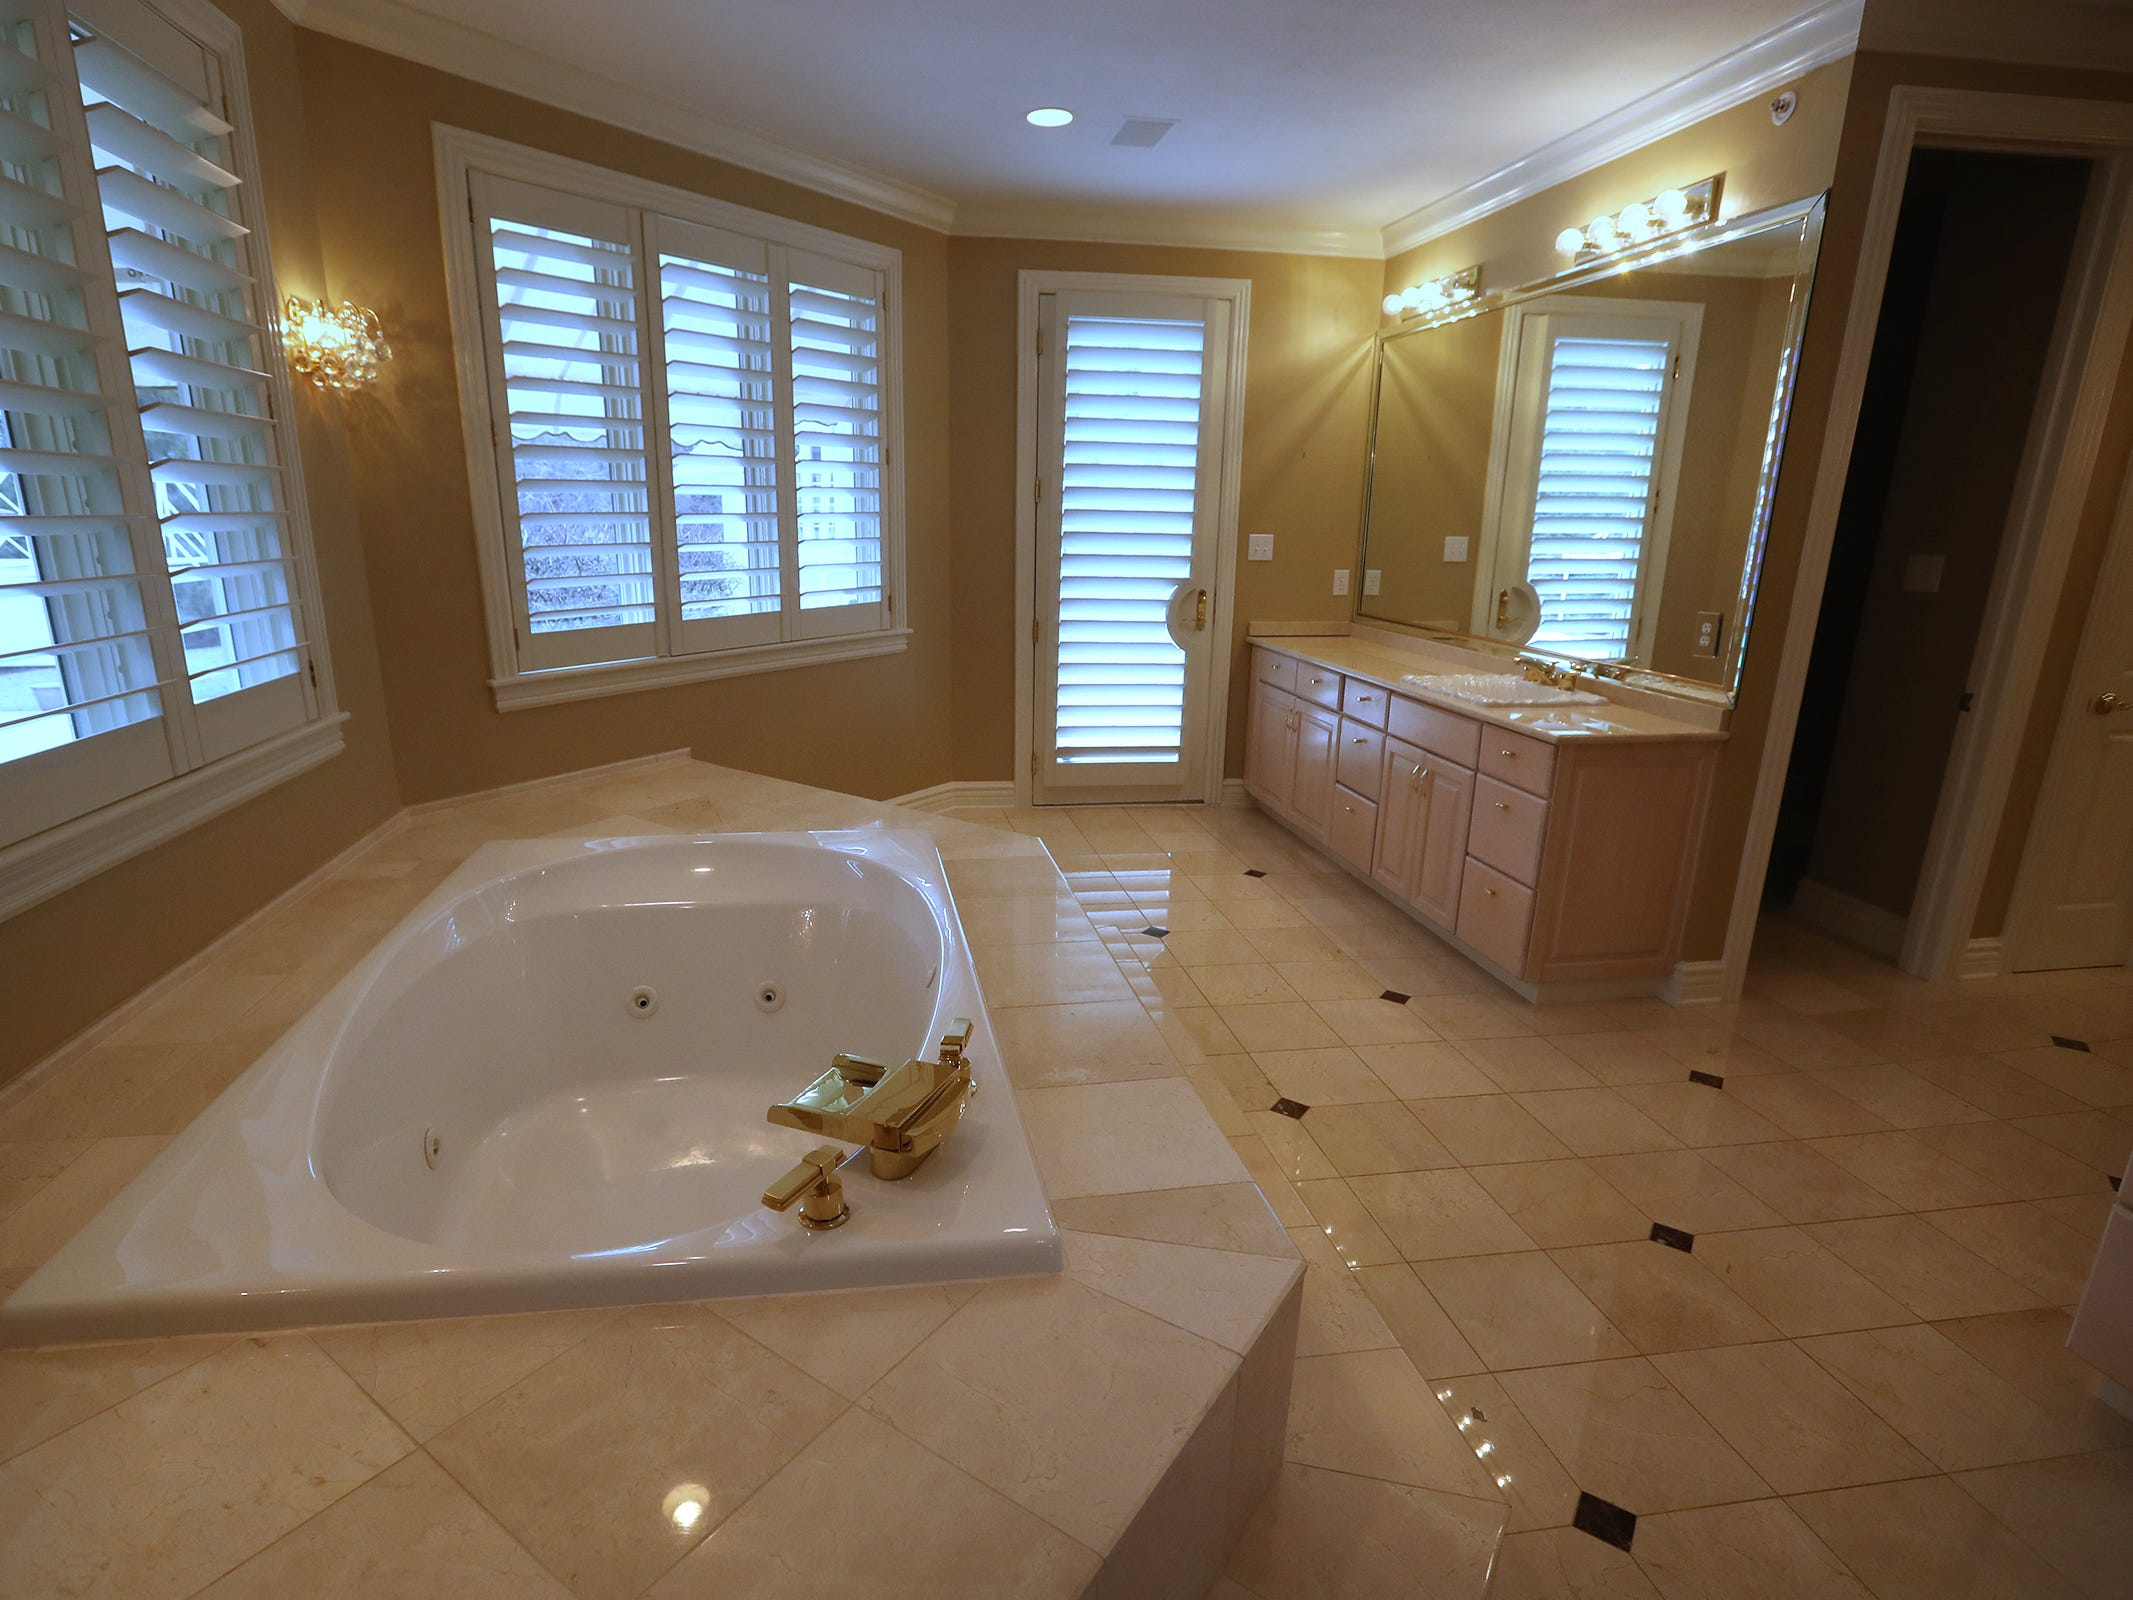 This is the master bathroom in the home at 1270 Laurelwood Ct. in Carmel, Friday, Dec. 28, 2018.